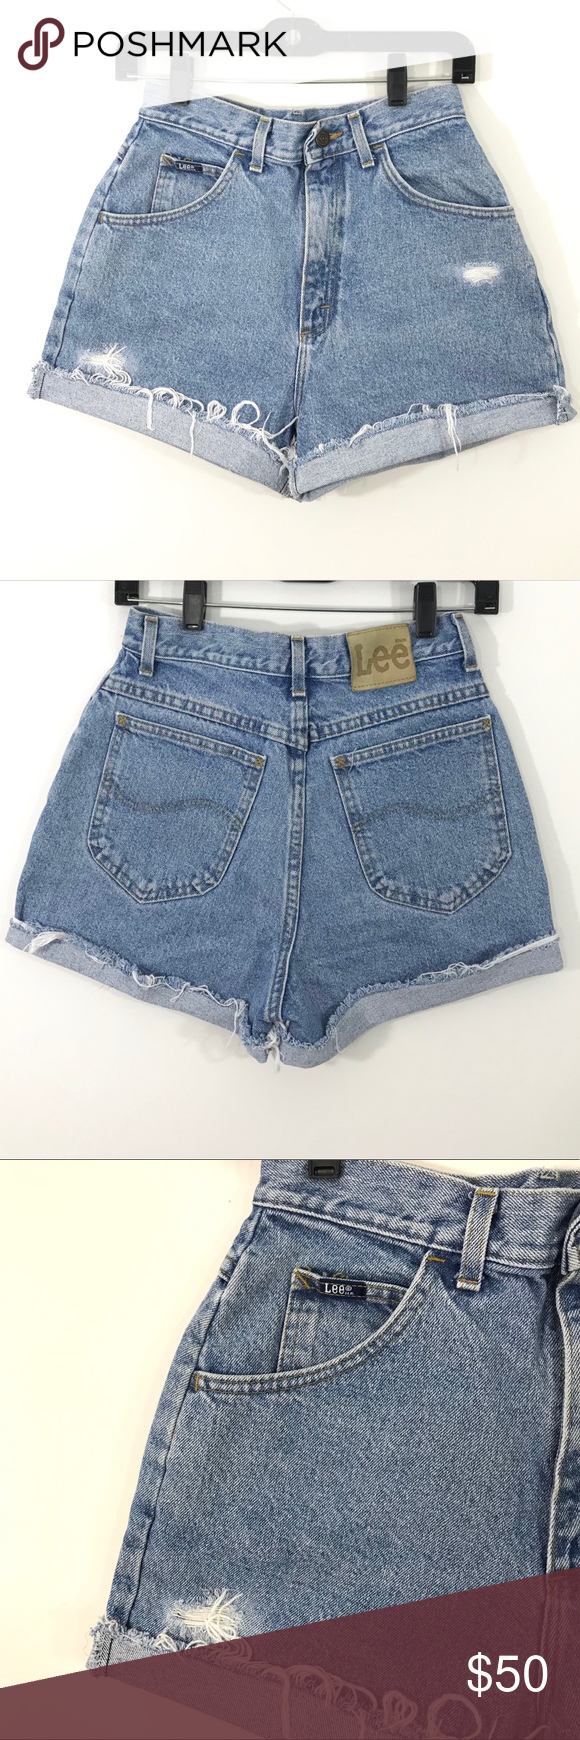 Rise Vintage These Off Jean Distress Lee Shorts Are Cut High Uxf1gA